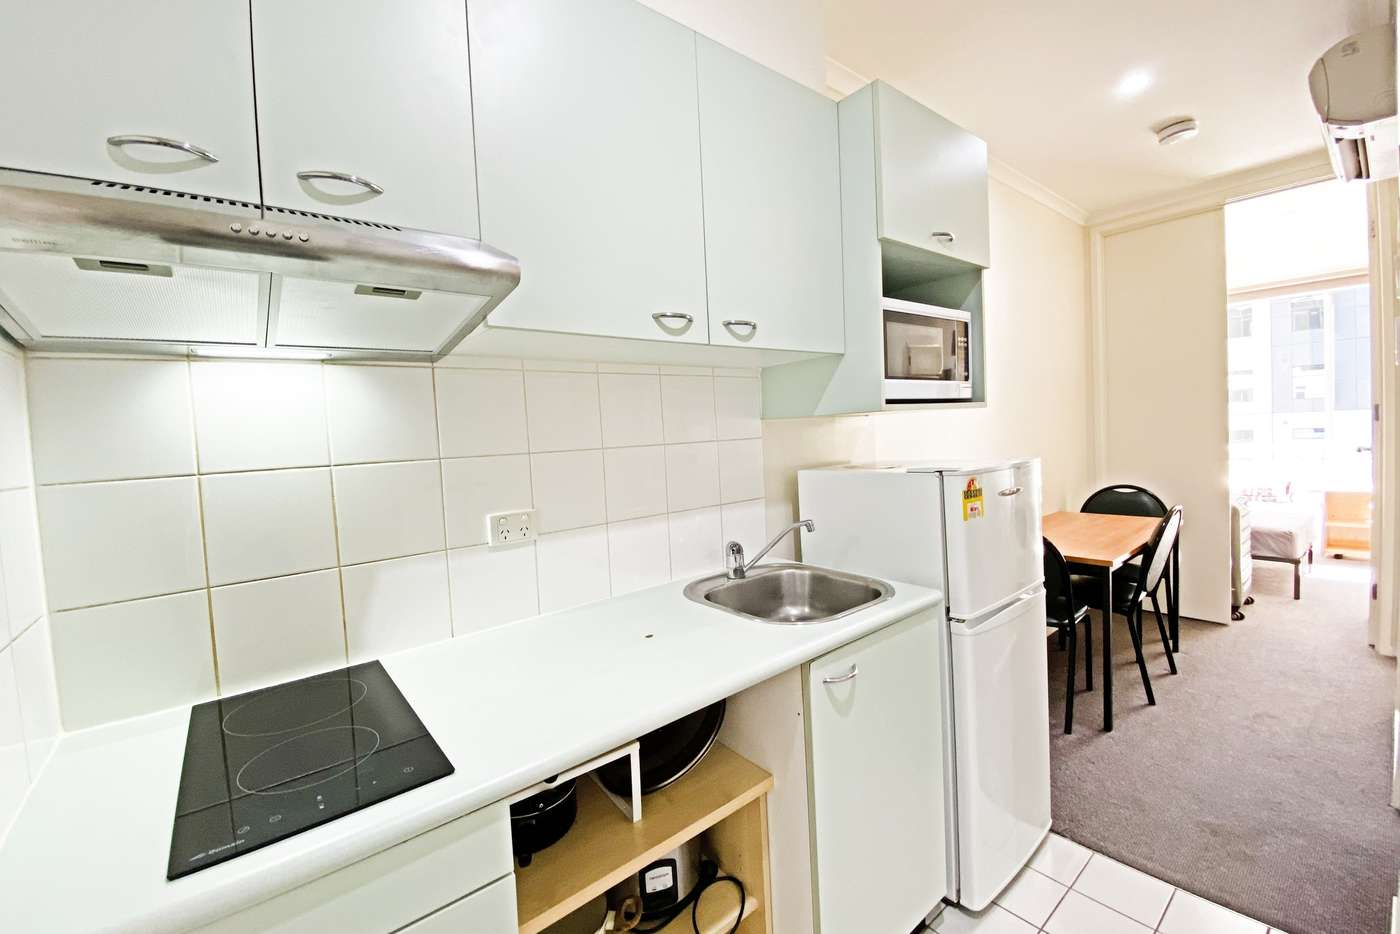 Main view of Homely apartment listing, 963/488 Swanston Street, Carlton VIC 3053